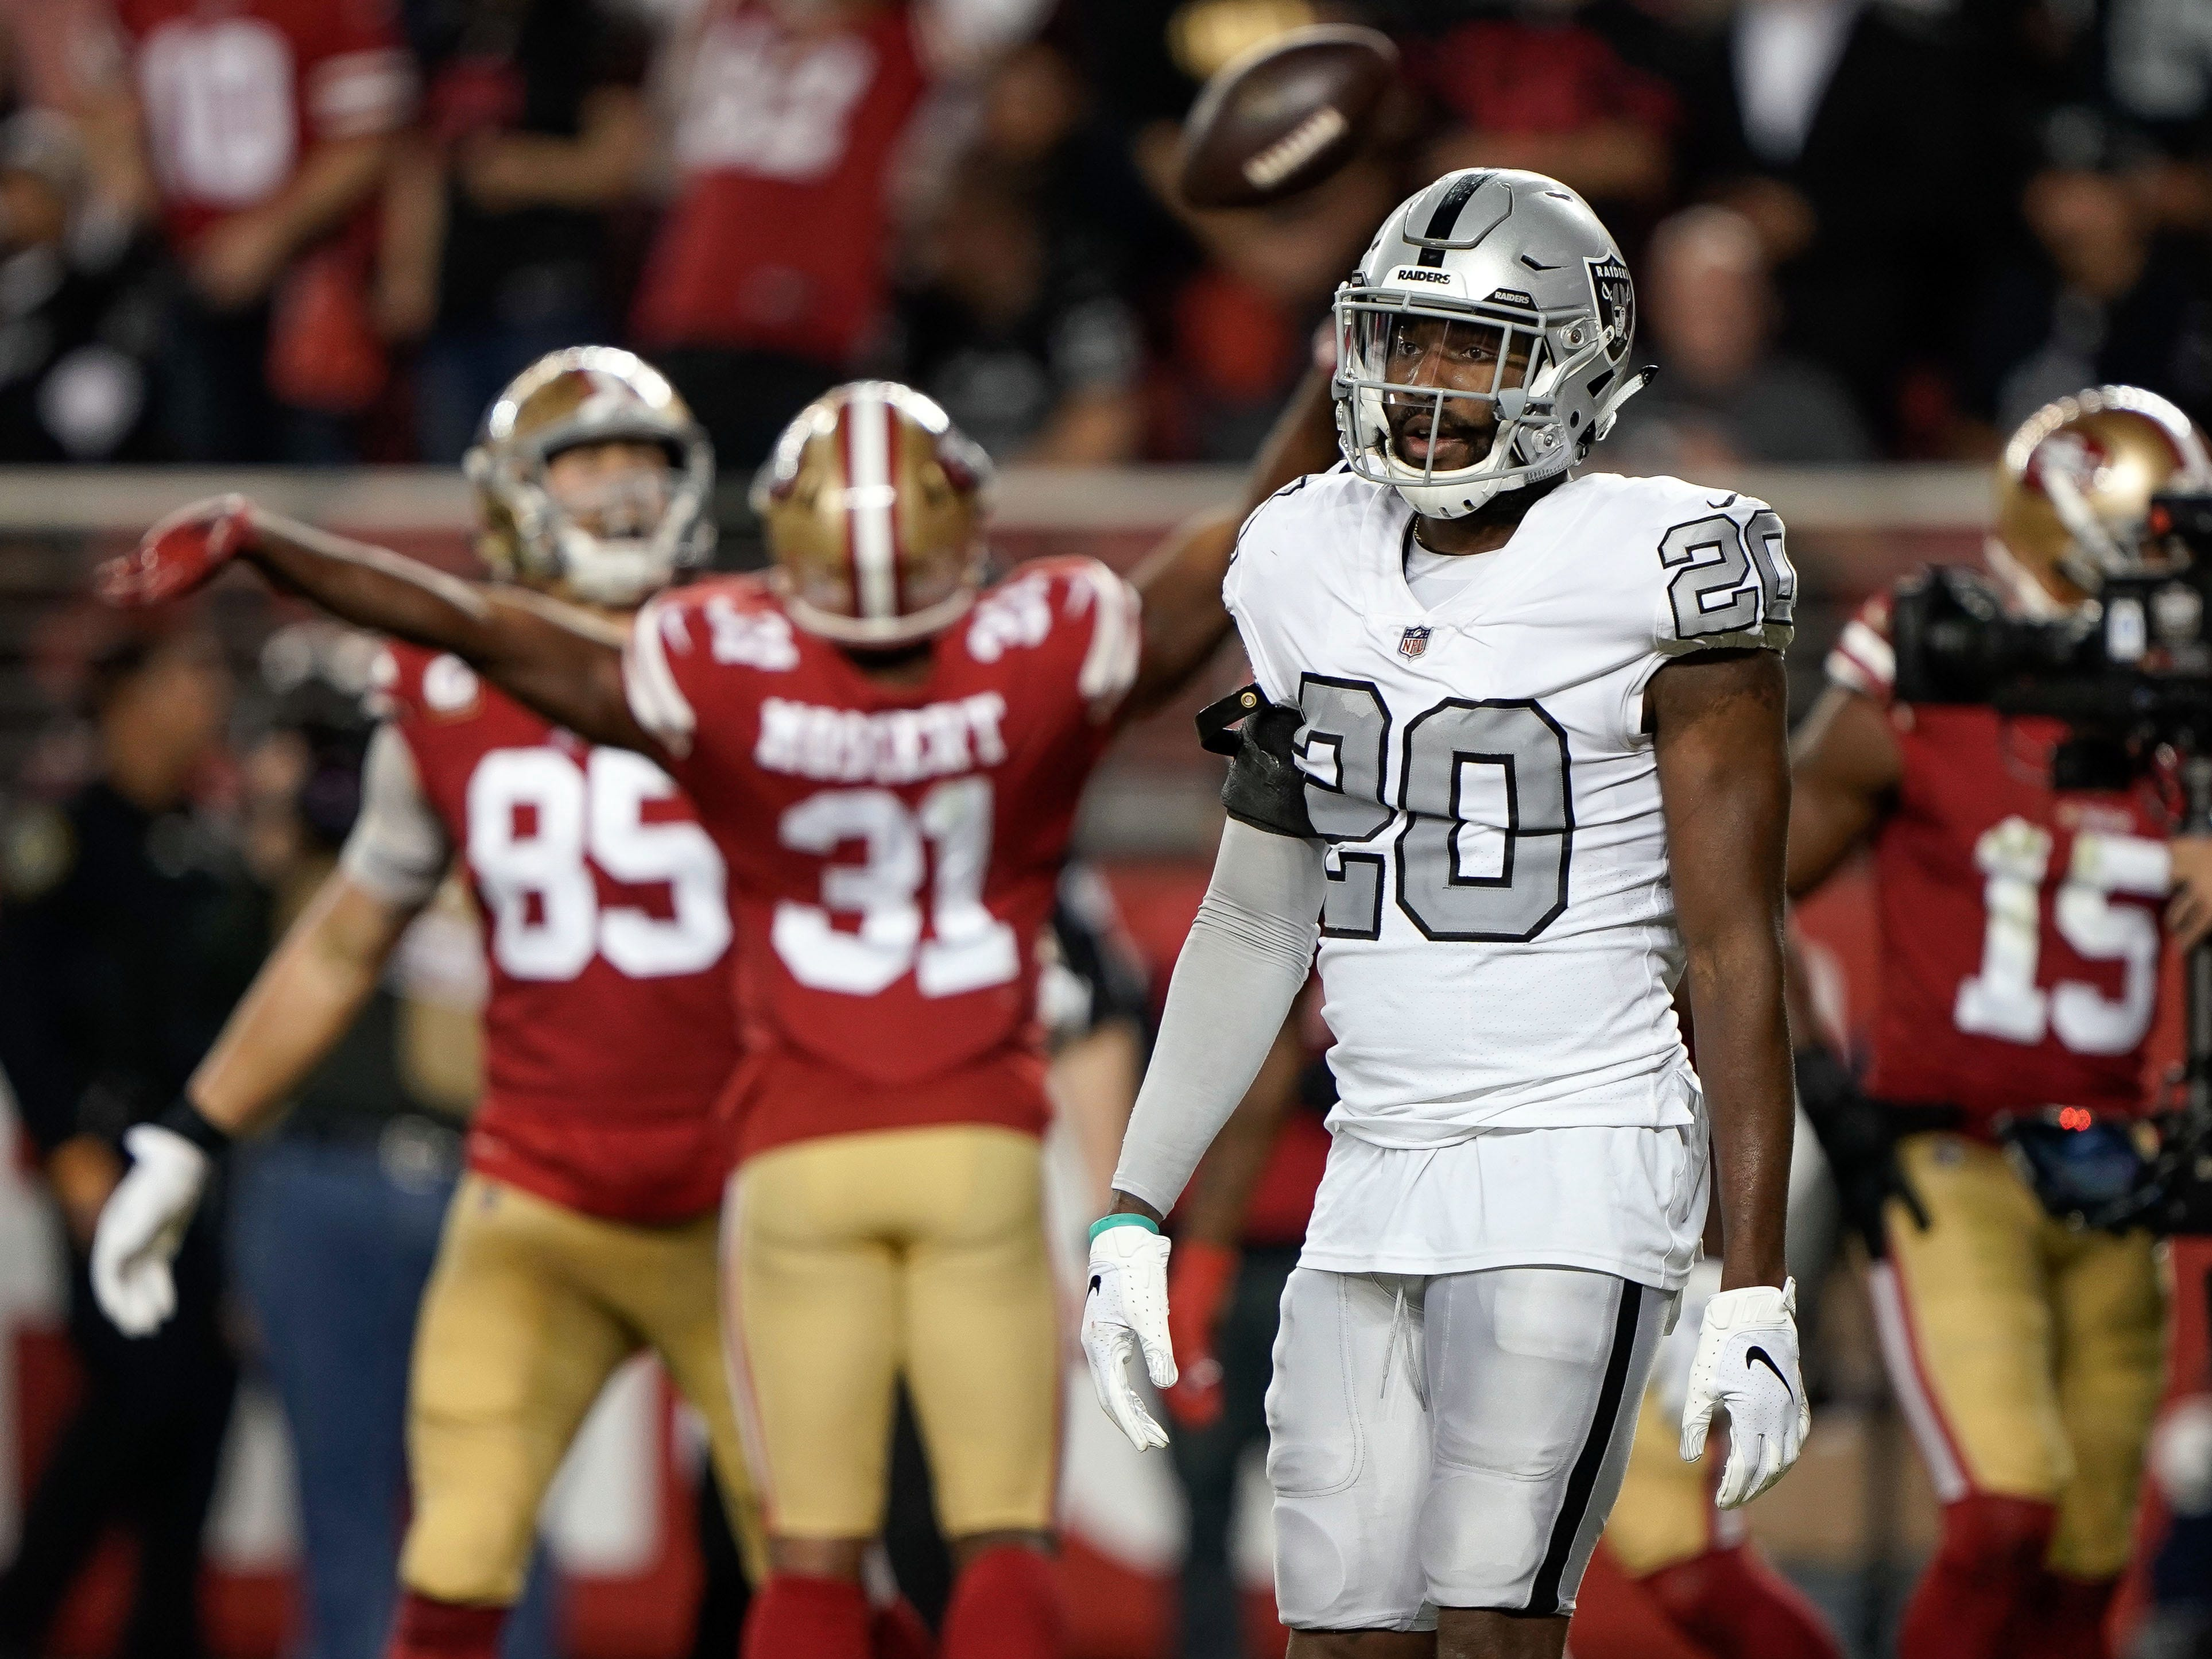 Oakland Raiders cornerback Daryl Worley (20) reacts as the San Francisco 49ers celebrate a touchdown during the third quarter at Levi's Stadium.